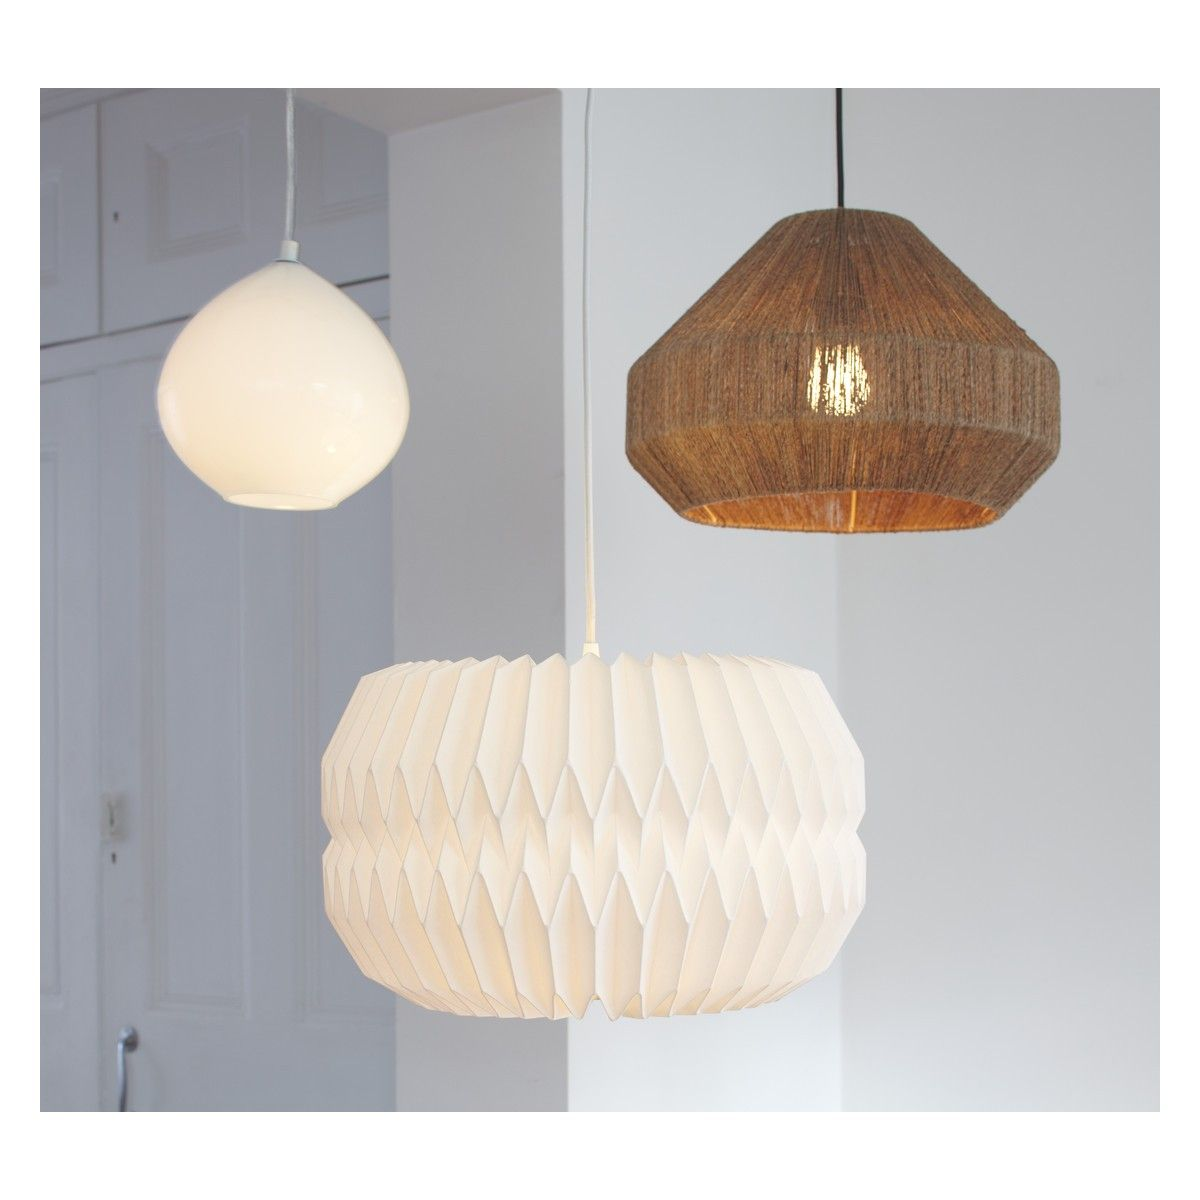 Kura large white paper lamp shade d40 x h25cm buy now at habitat kura large white paper lamp shade d40 x h25cm buy now at habitat uk aloadofball Image collections